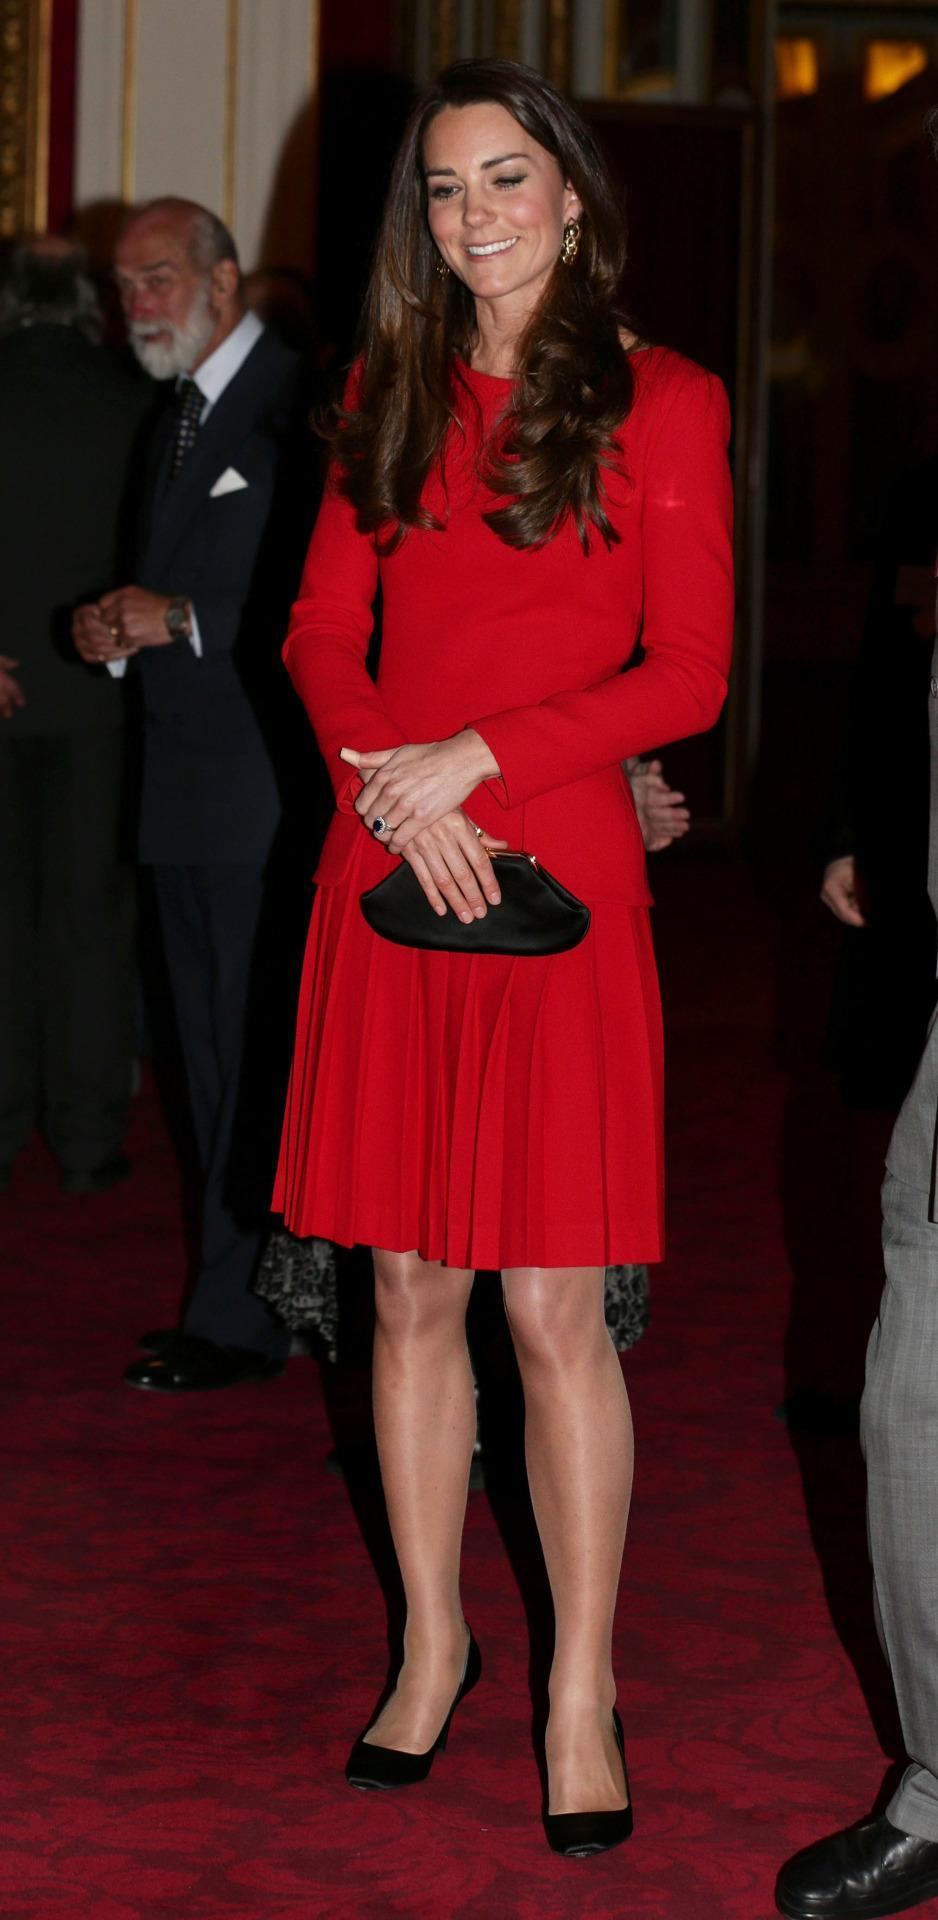 <p>During an arts reception at Buckingham Palace, Kate wore a vivd red Alexander McQueen dress with a bespoke Anya Hindmarsh clutch and black Prada pumps.</p><p><i>[Photo: PA]</i></p>